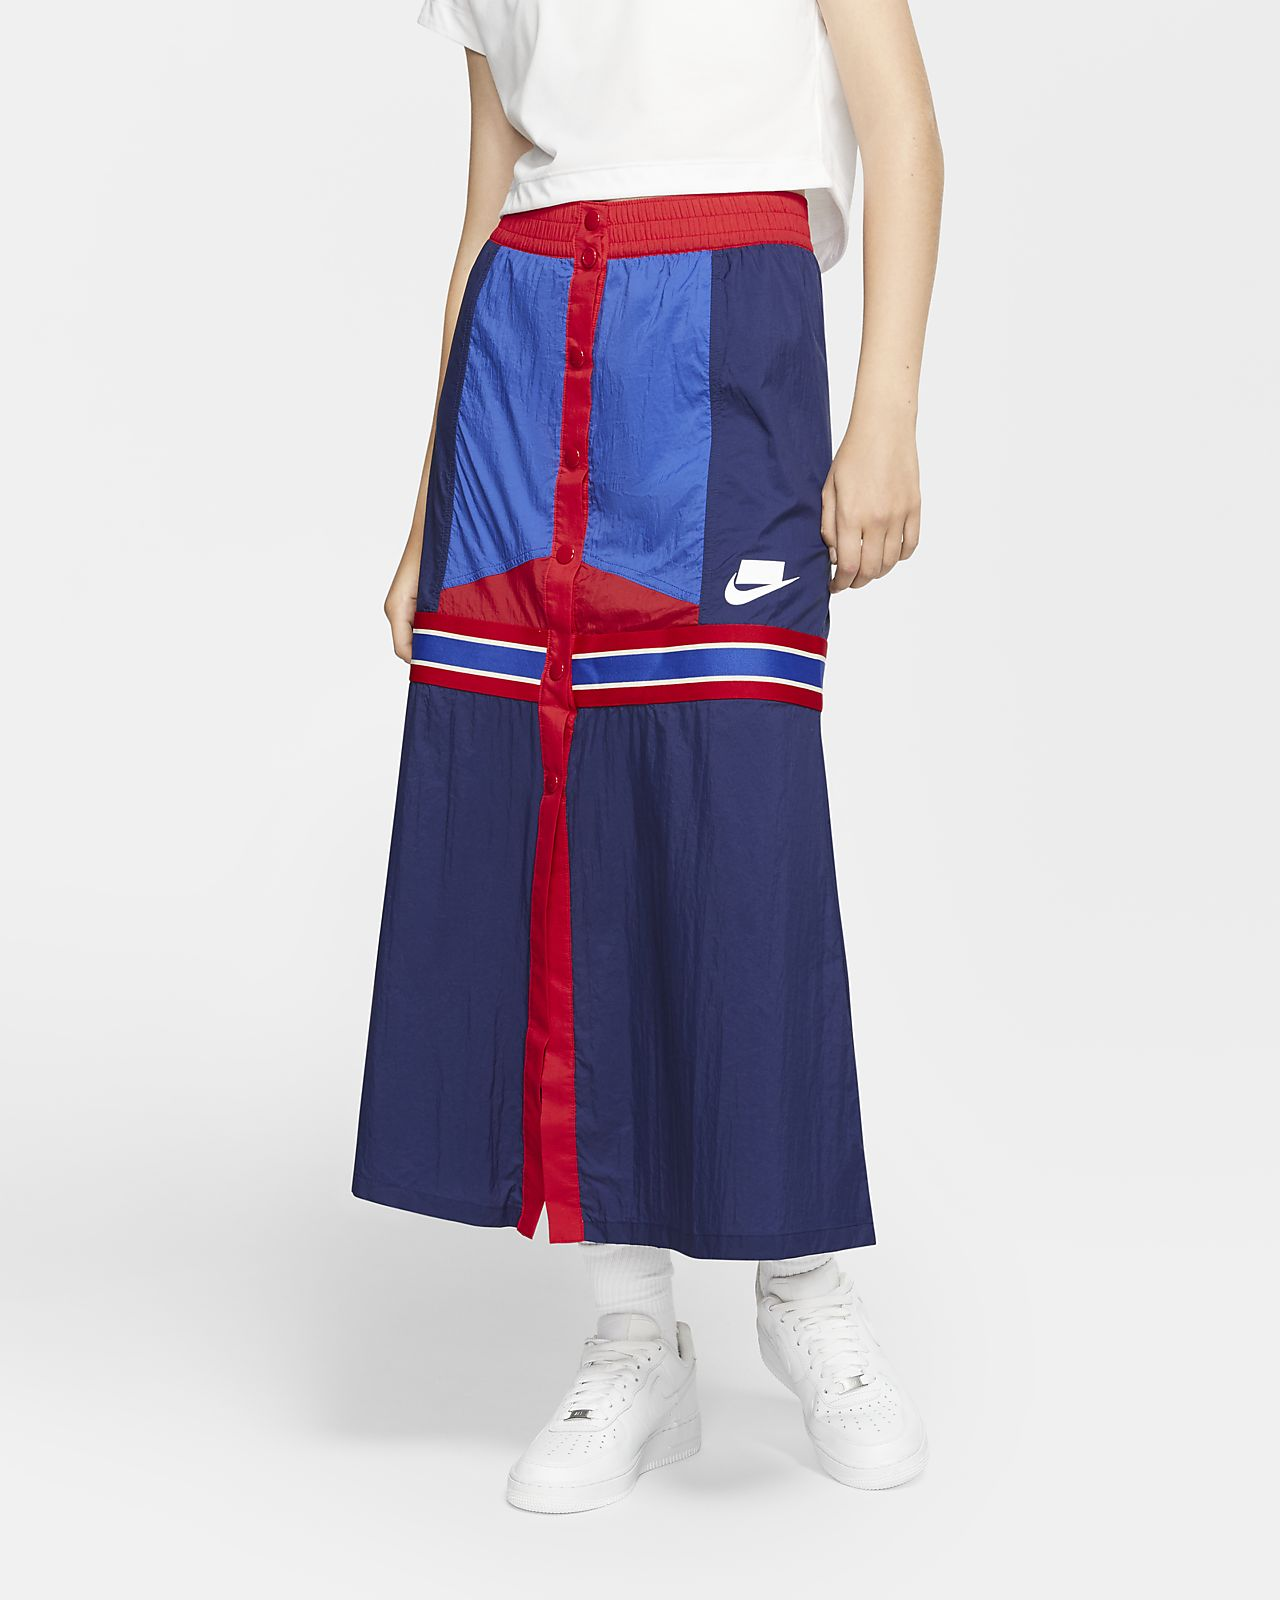 Nike Sportswear NSW Women's Skirt